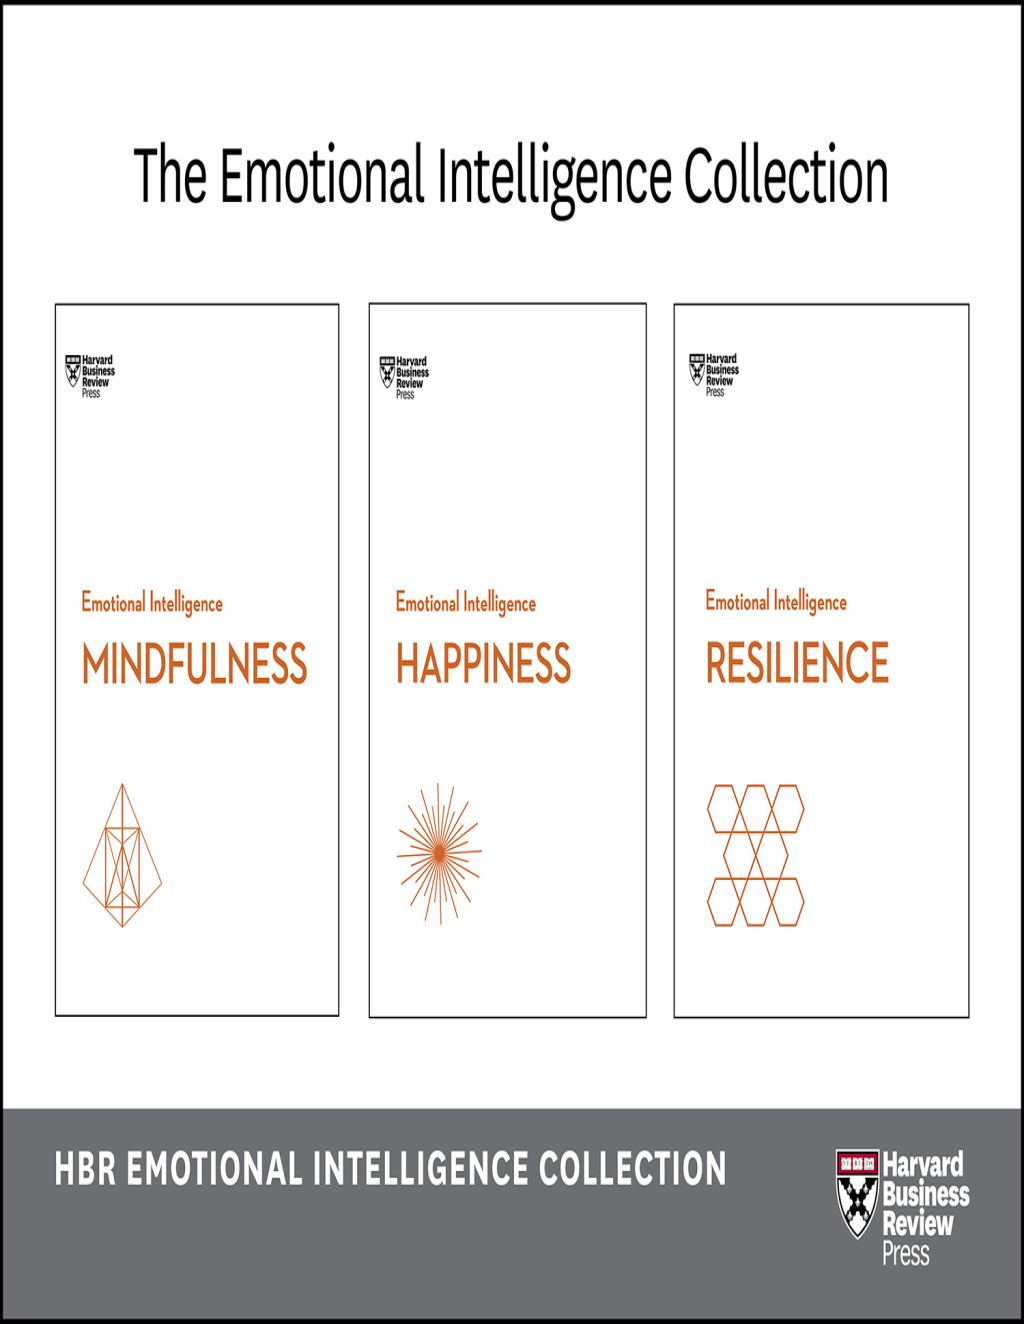 HBR Emotional Intelligence Series Happiness